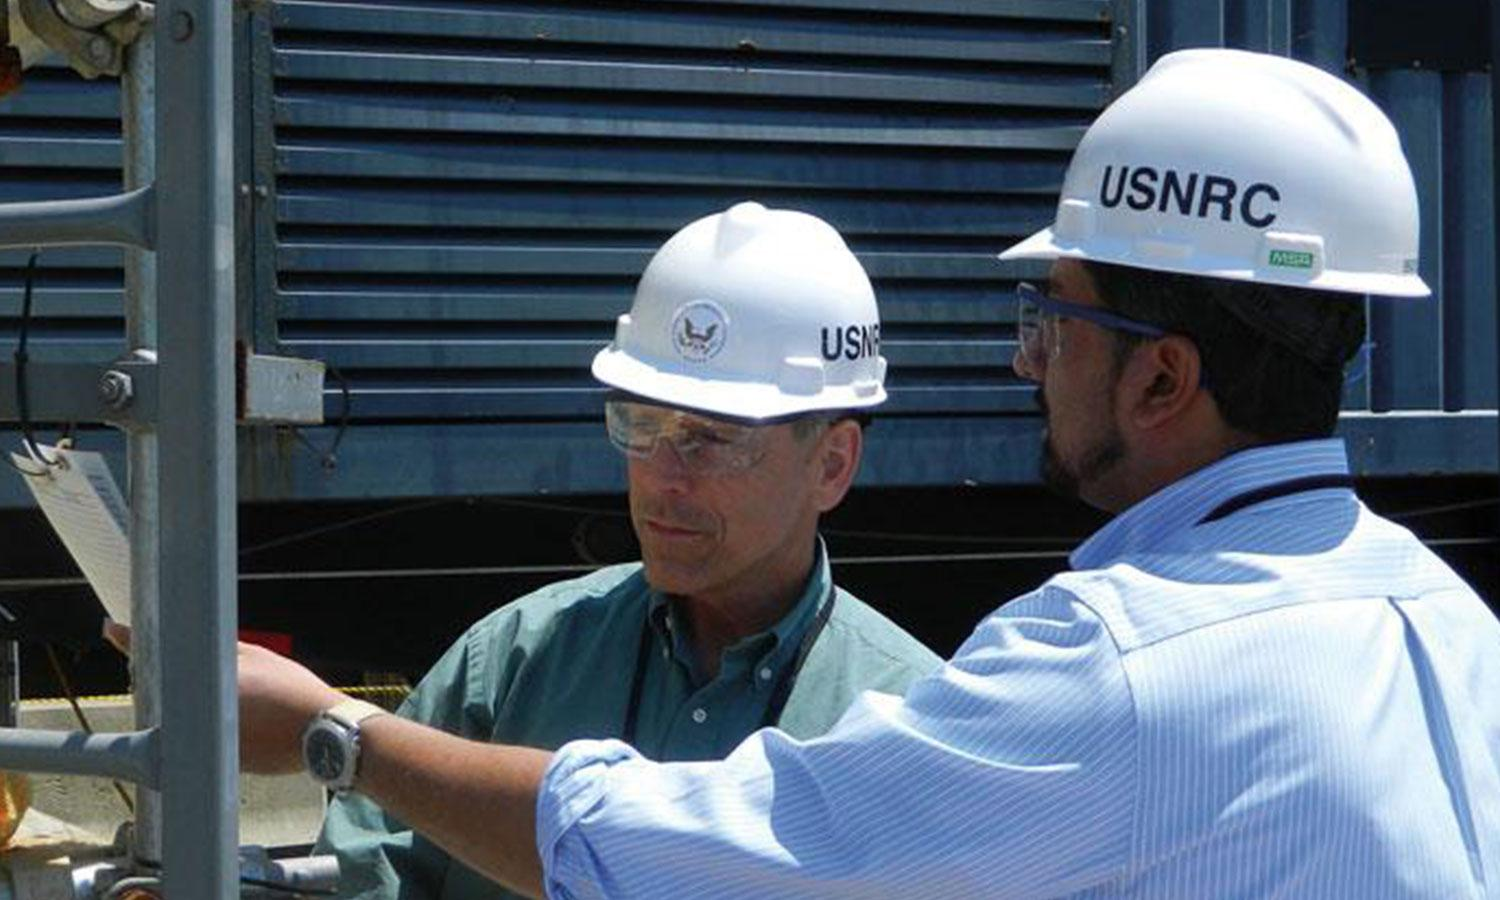 Two men with white USNRC hard hats look at document